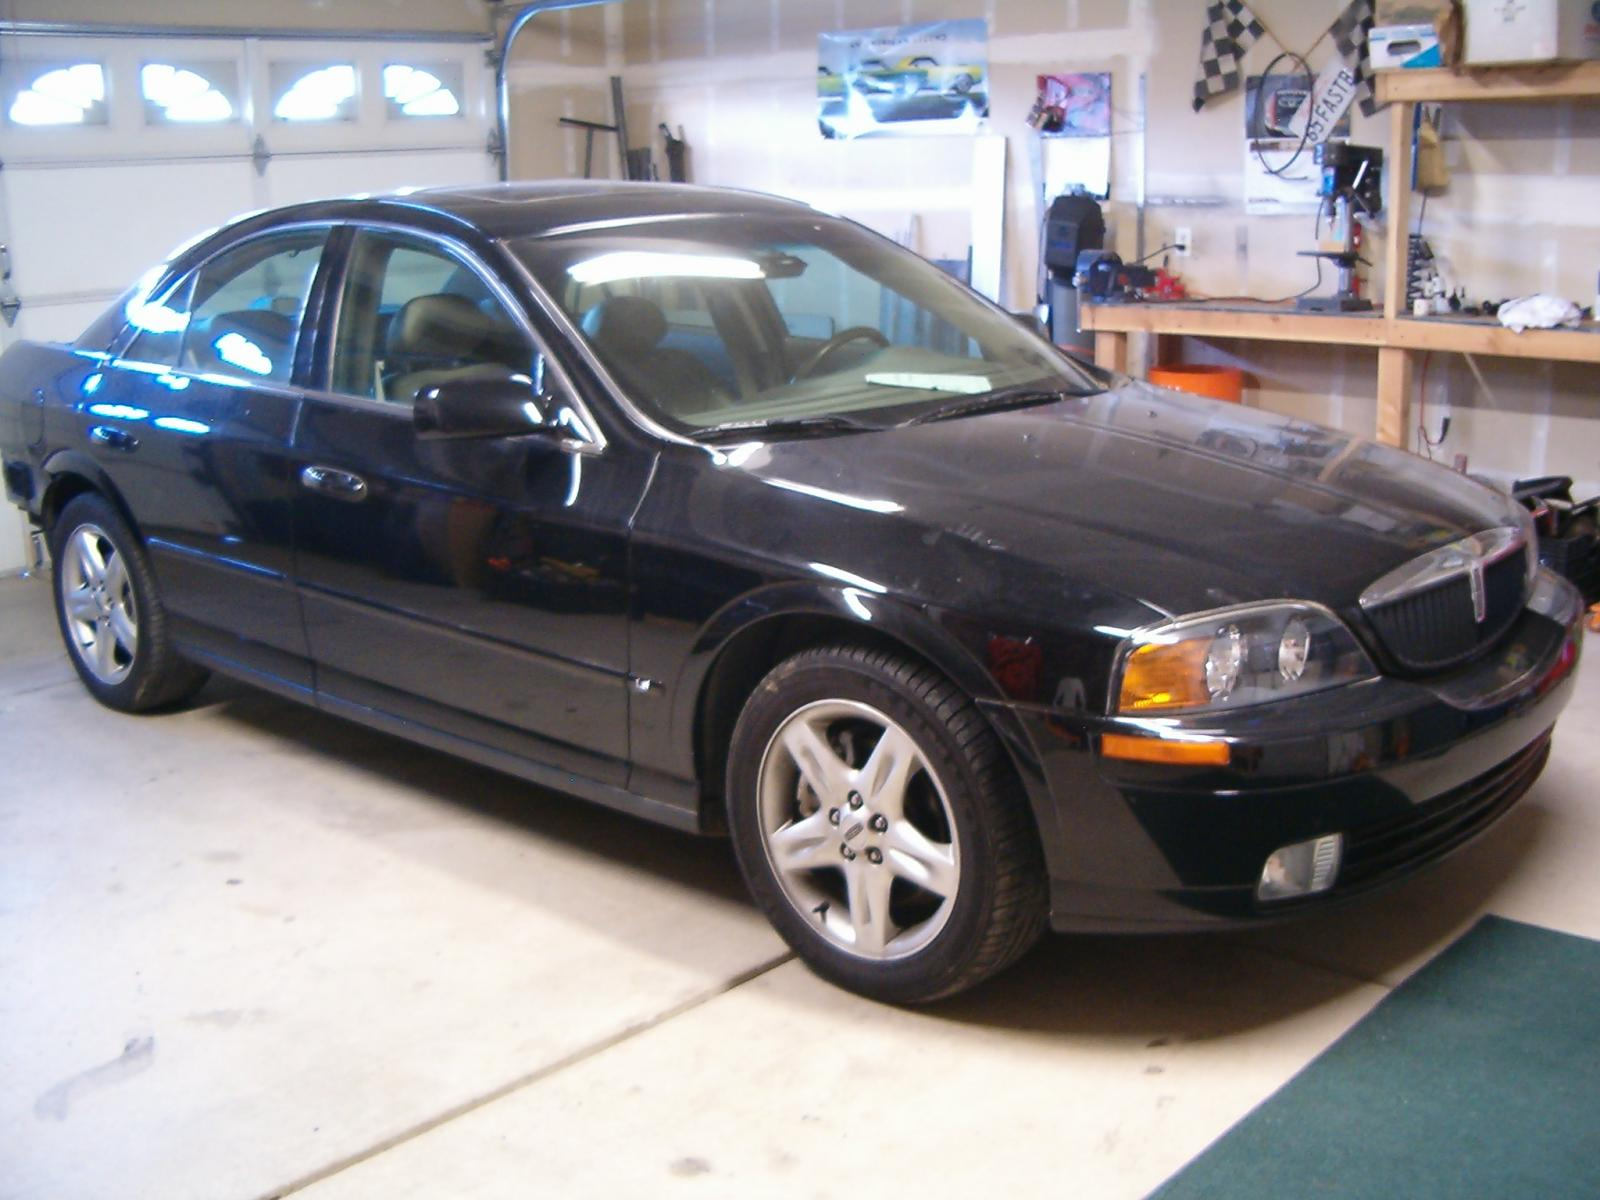 2001 lincoln ls information and photos zombiedrive 800 1024 1280 1600 origin 2001 lincoln ls sciox Gallery